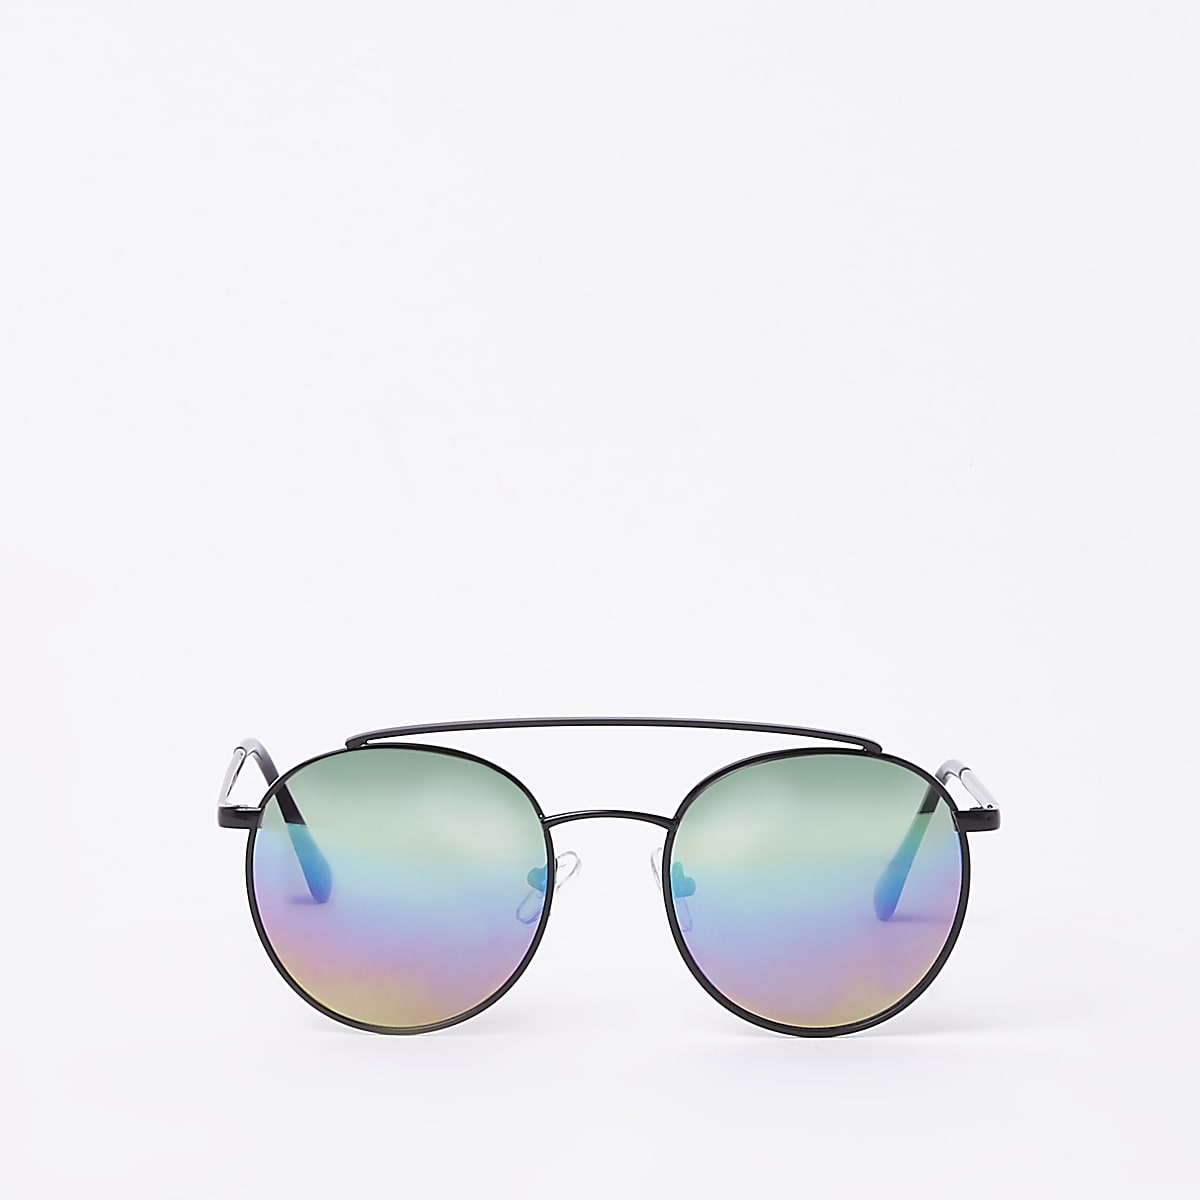 Boys black round rainbow tinted sunglasses